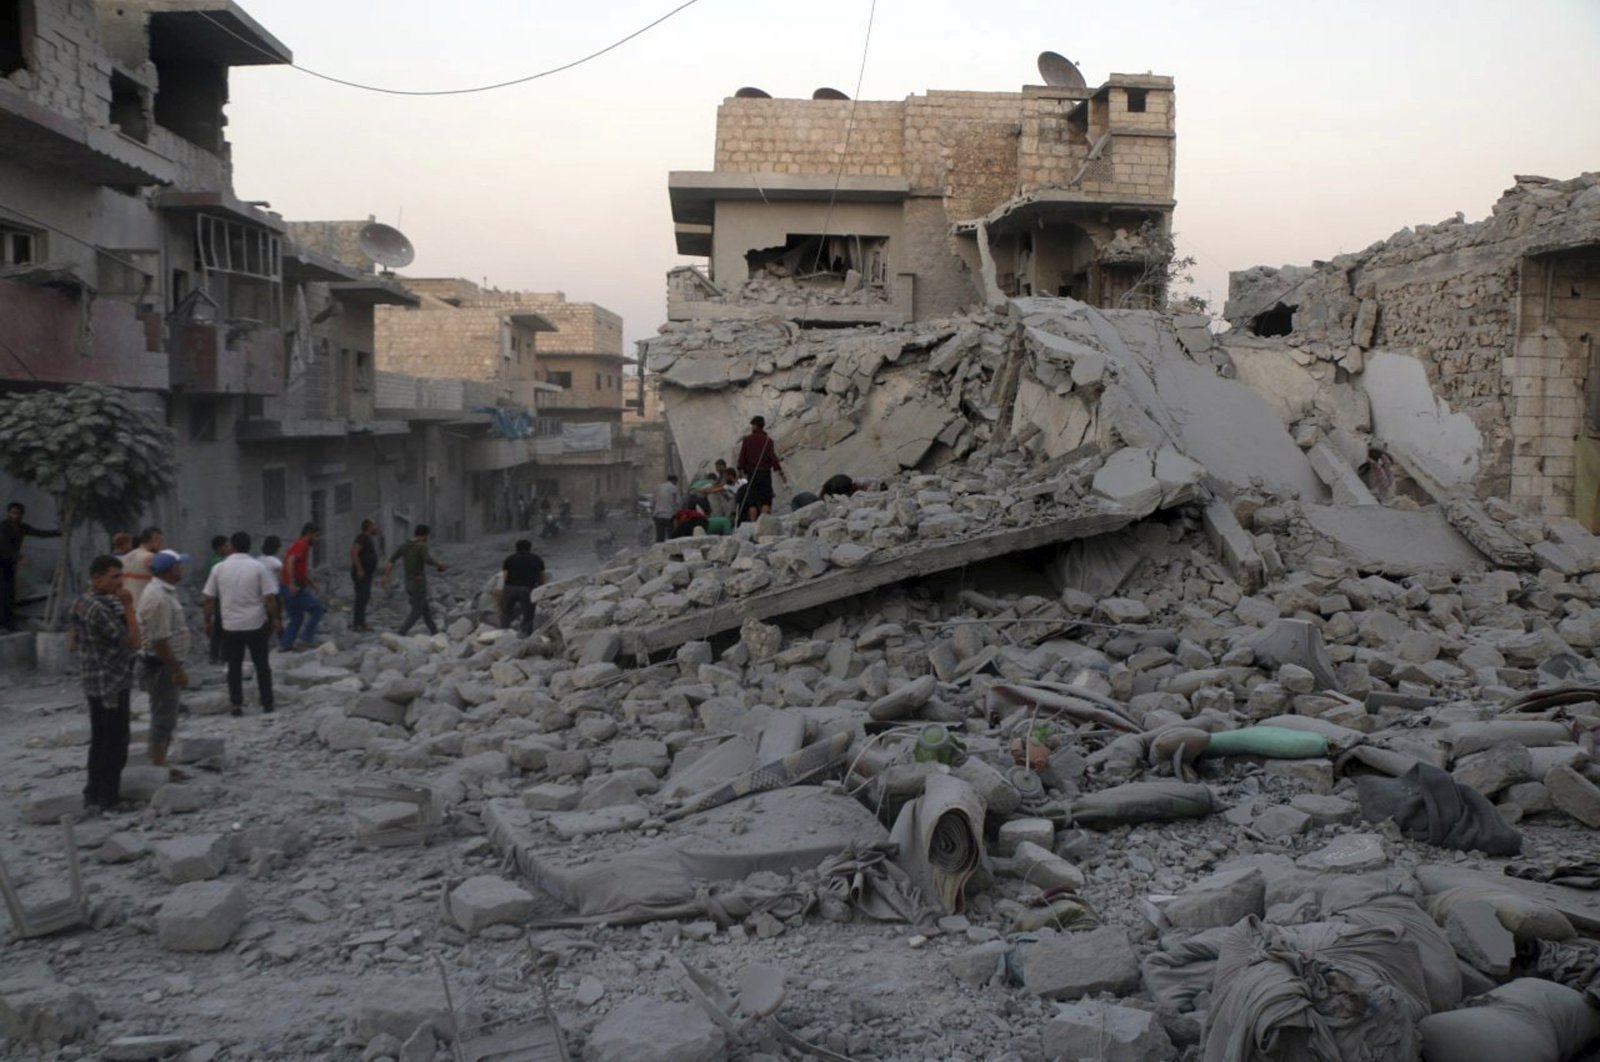 People searching for victims under the rubble of destroyed buildings that were hit by regime airstrikes in the northern town of Maaret al-Numan, in Idlib province, Syria, August 28, 2019. (AP Photo)